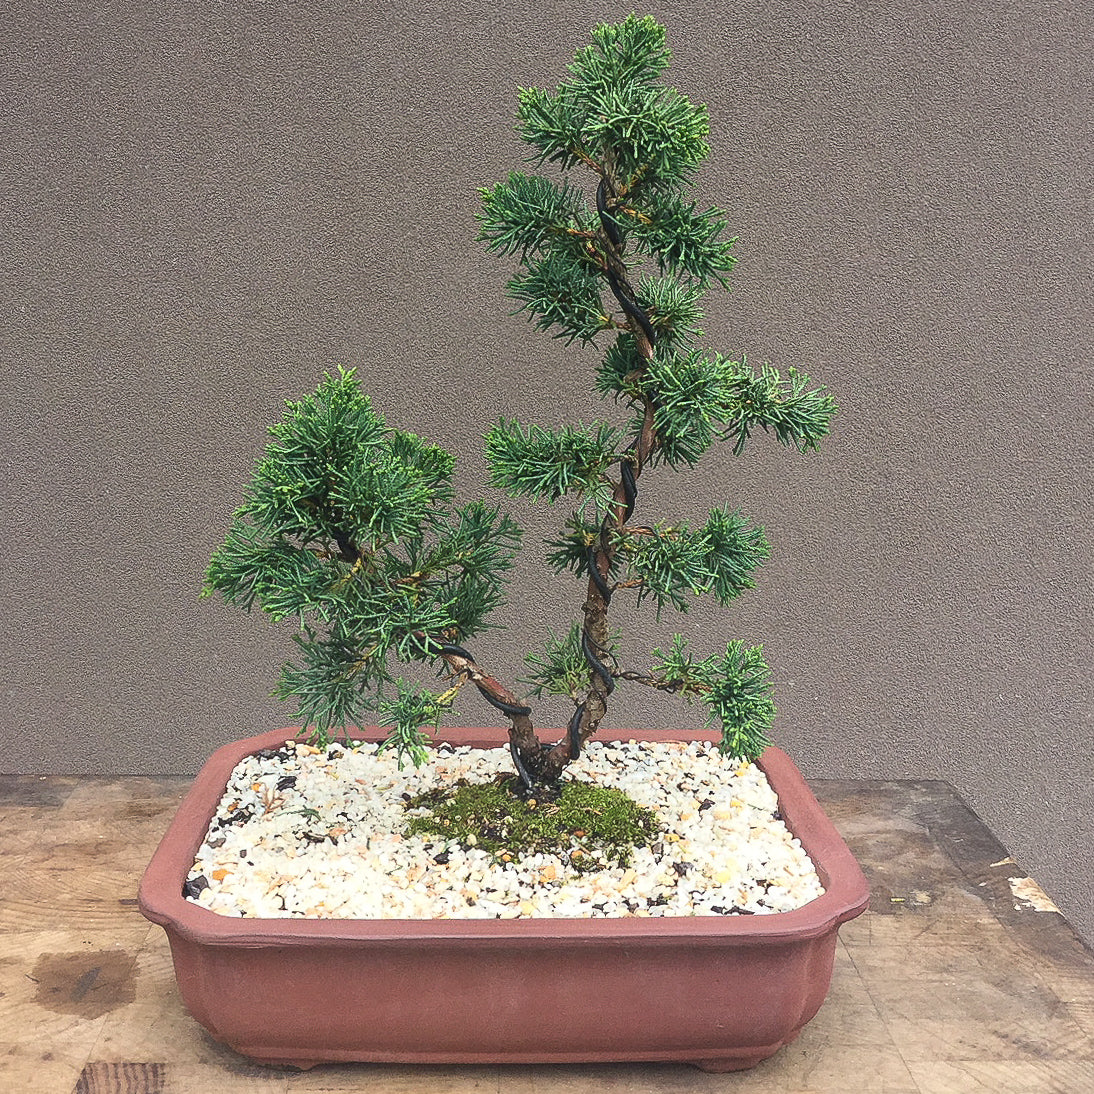 Bonsai Workshop - Beginners